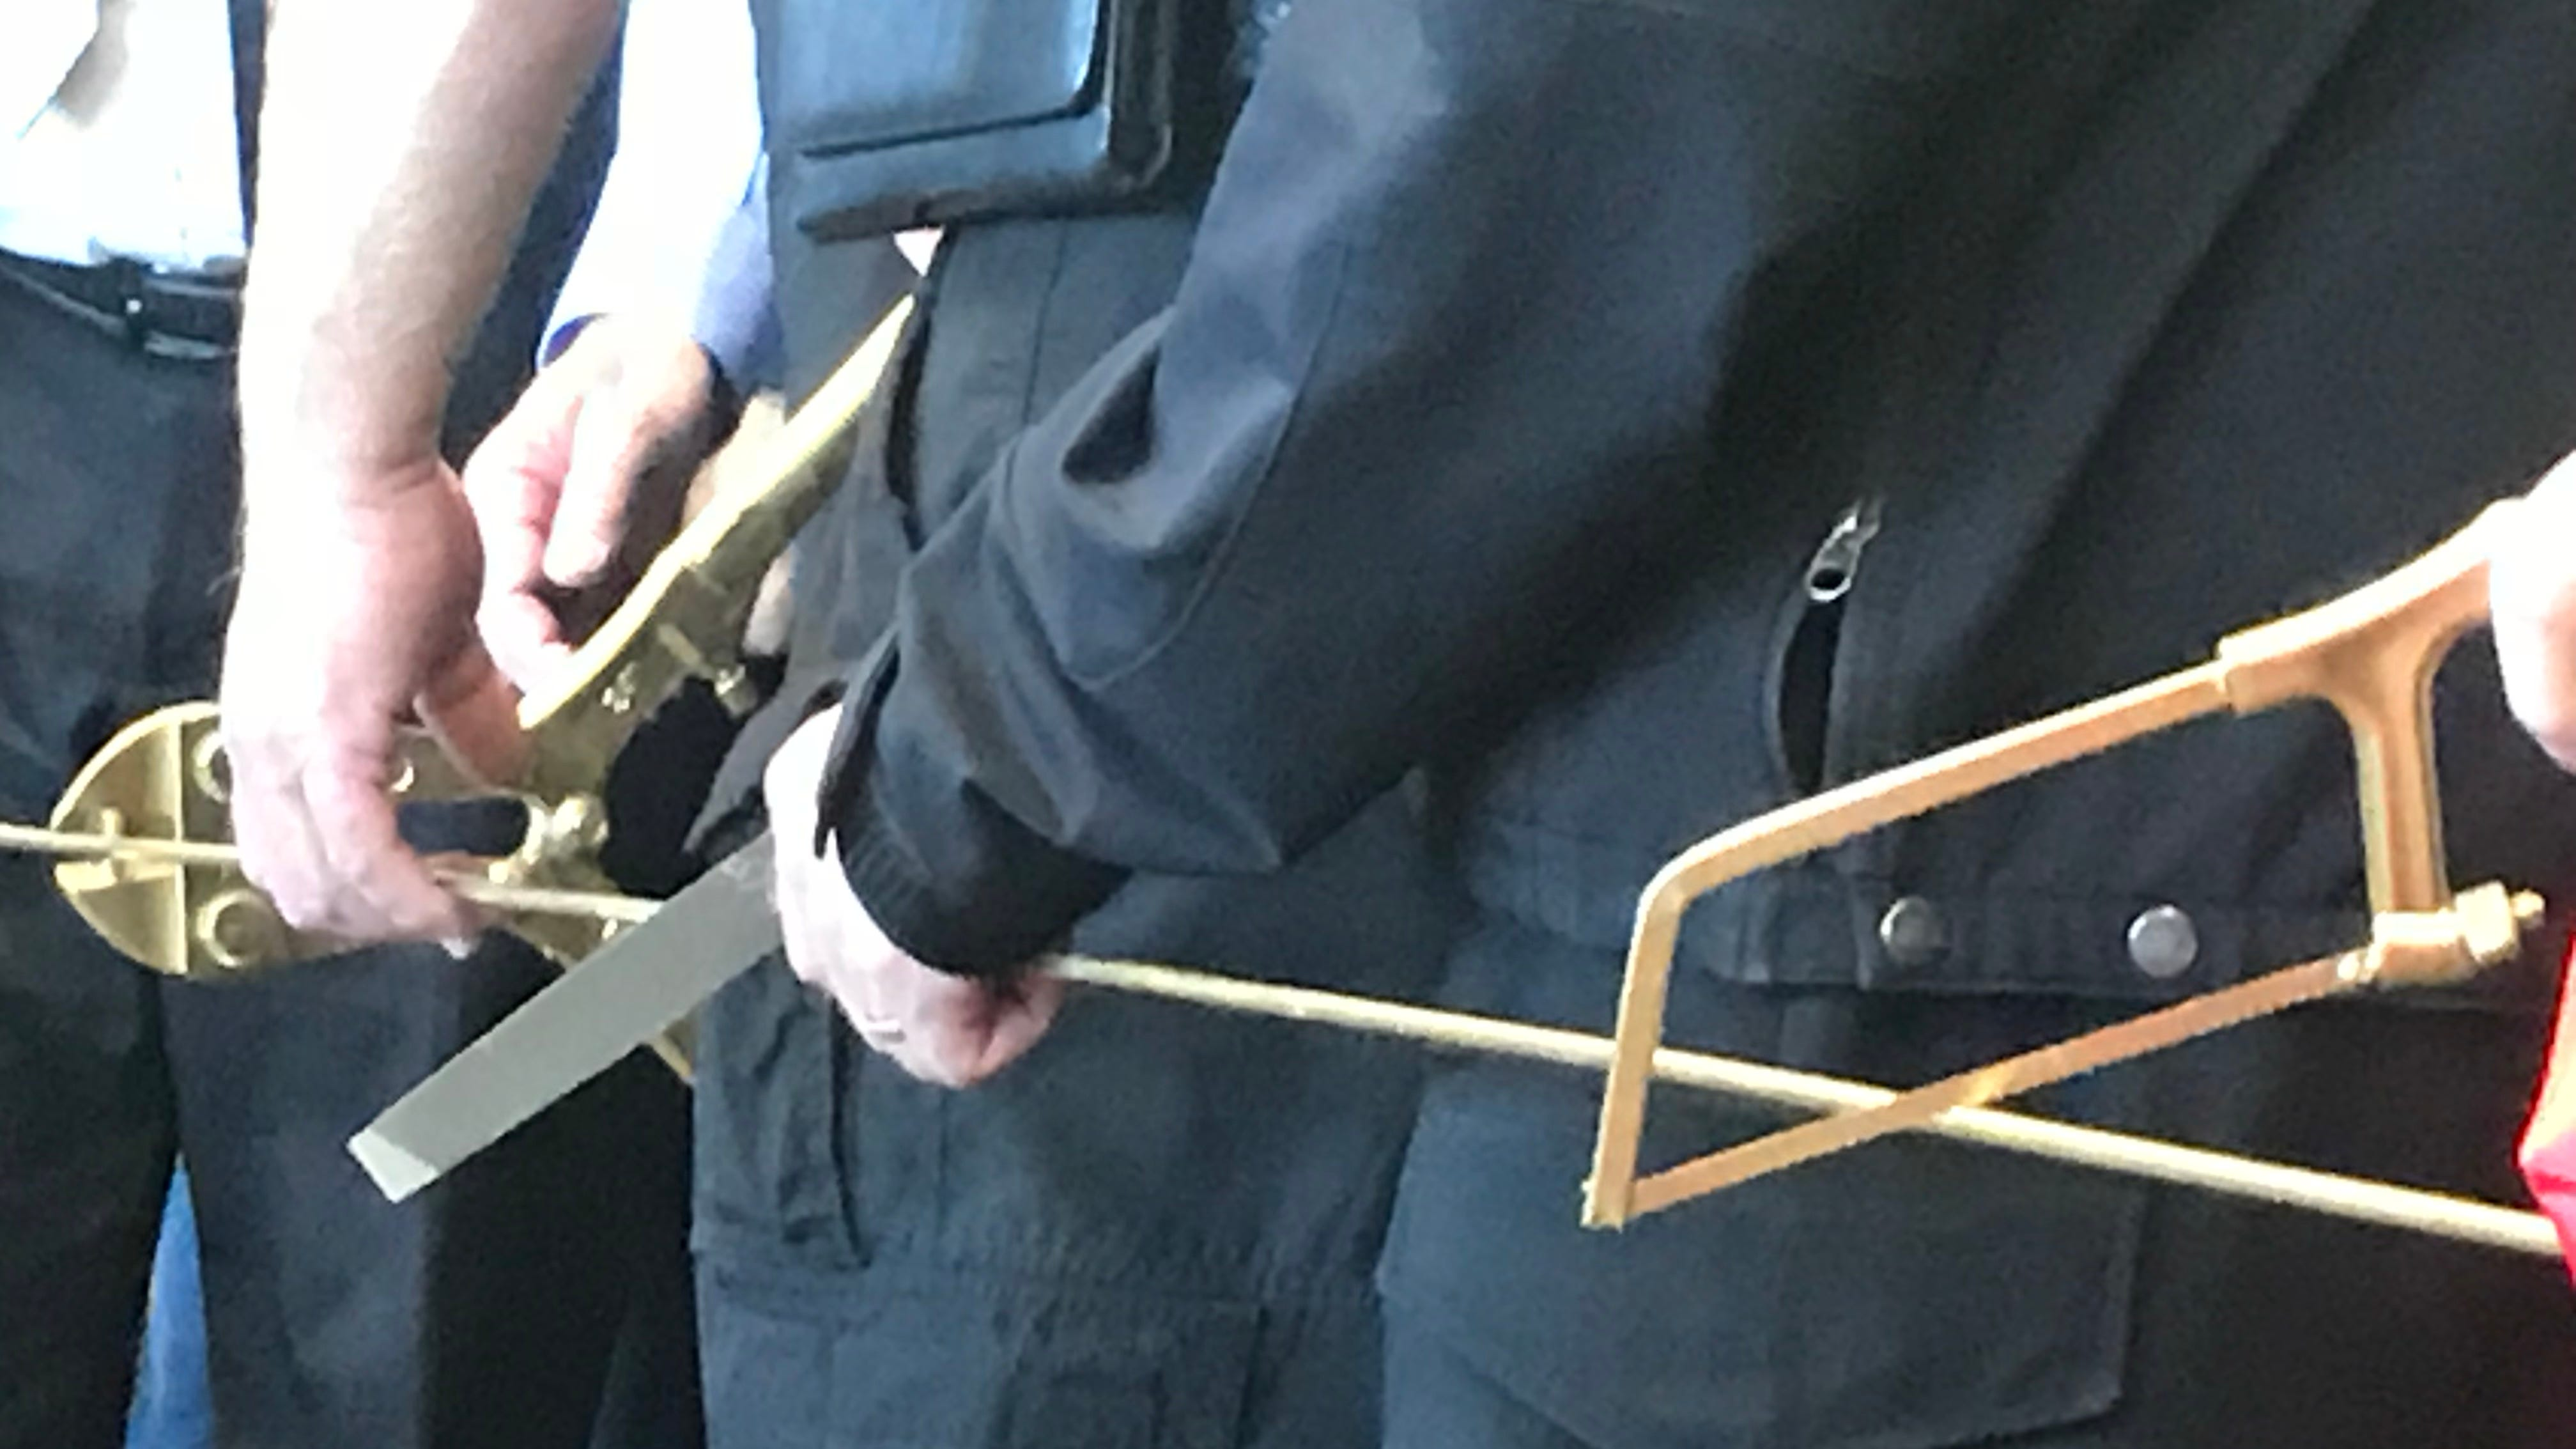 """Washington County Sheriff's Office personnel joined other county officials Monday in celebrating the opening of a new expansion at Purgatory Correctional Facility that will house low-risk inmates who participate in a special work program.  A little jailhouse humor was involved, as they used bolt cutters, a file and a hacksaw, all spray-painted gold, for the """"ribbon cutting."""""""